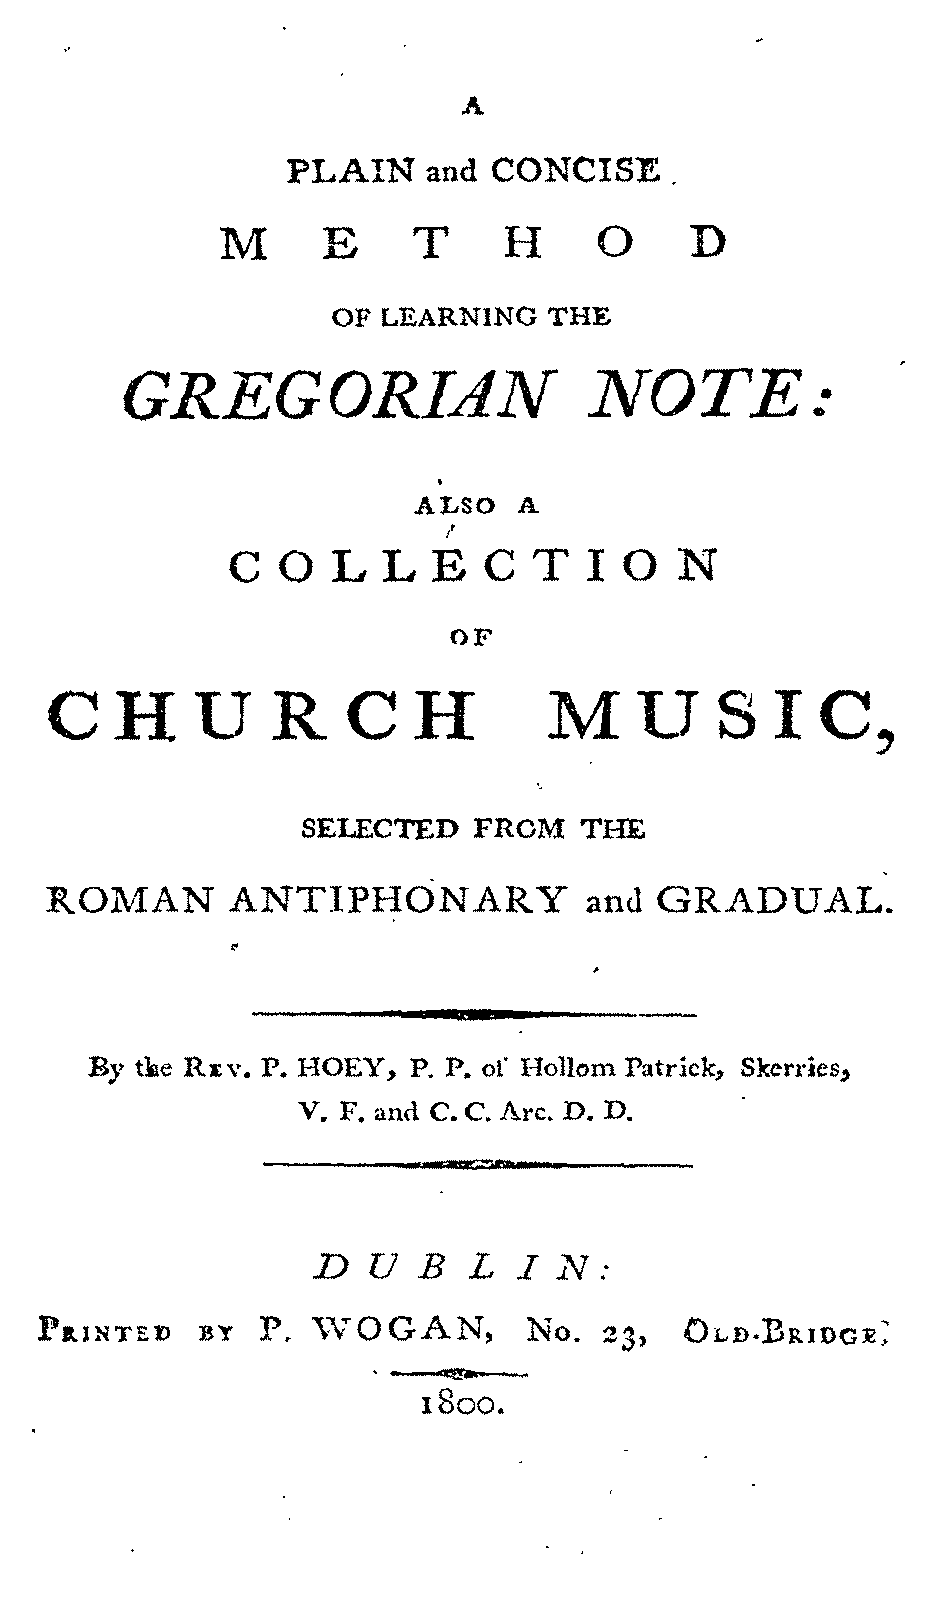 PMLP182562-Method of learning gregorian note 1800.pdf